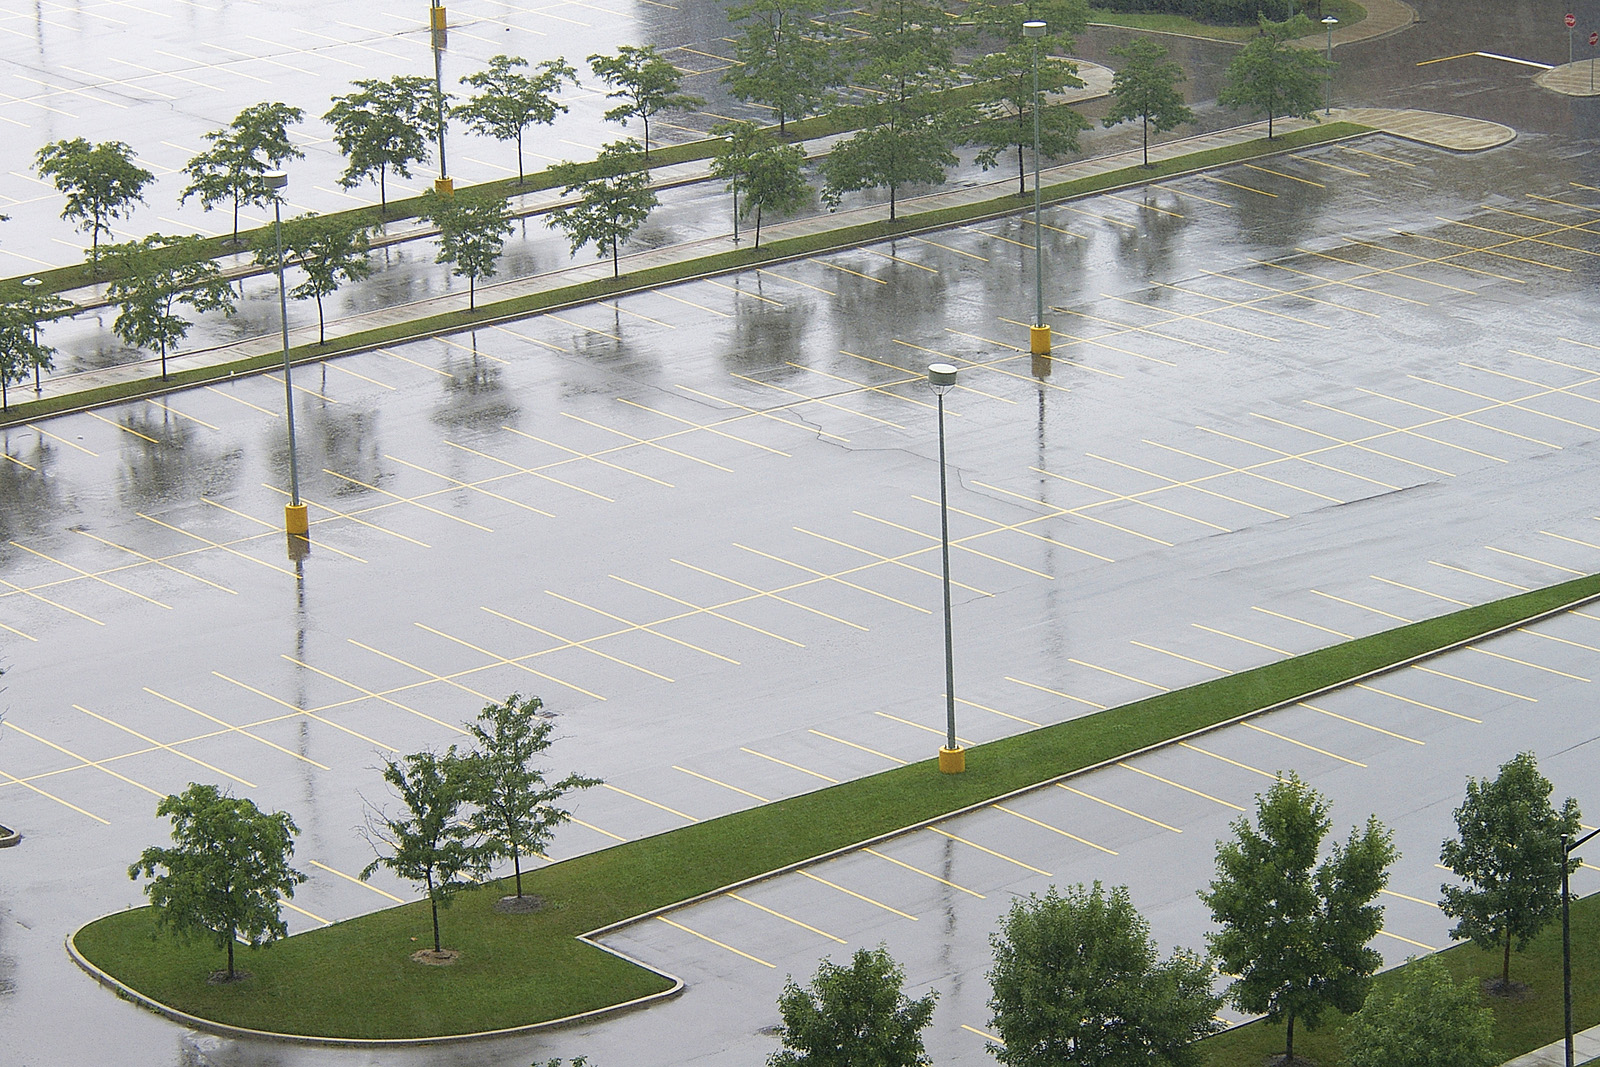 In a traditional concrete parking lot, rainwater can pond and/or become runoff thanks to the hardscaping. The result is a negative impact on the natural environment and storm sewers that struggle to keep up with the added loads. Photo © BigStock/David Wood